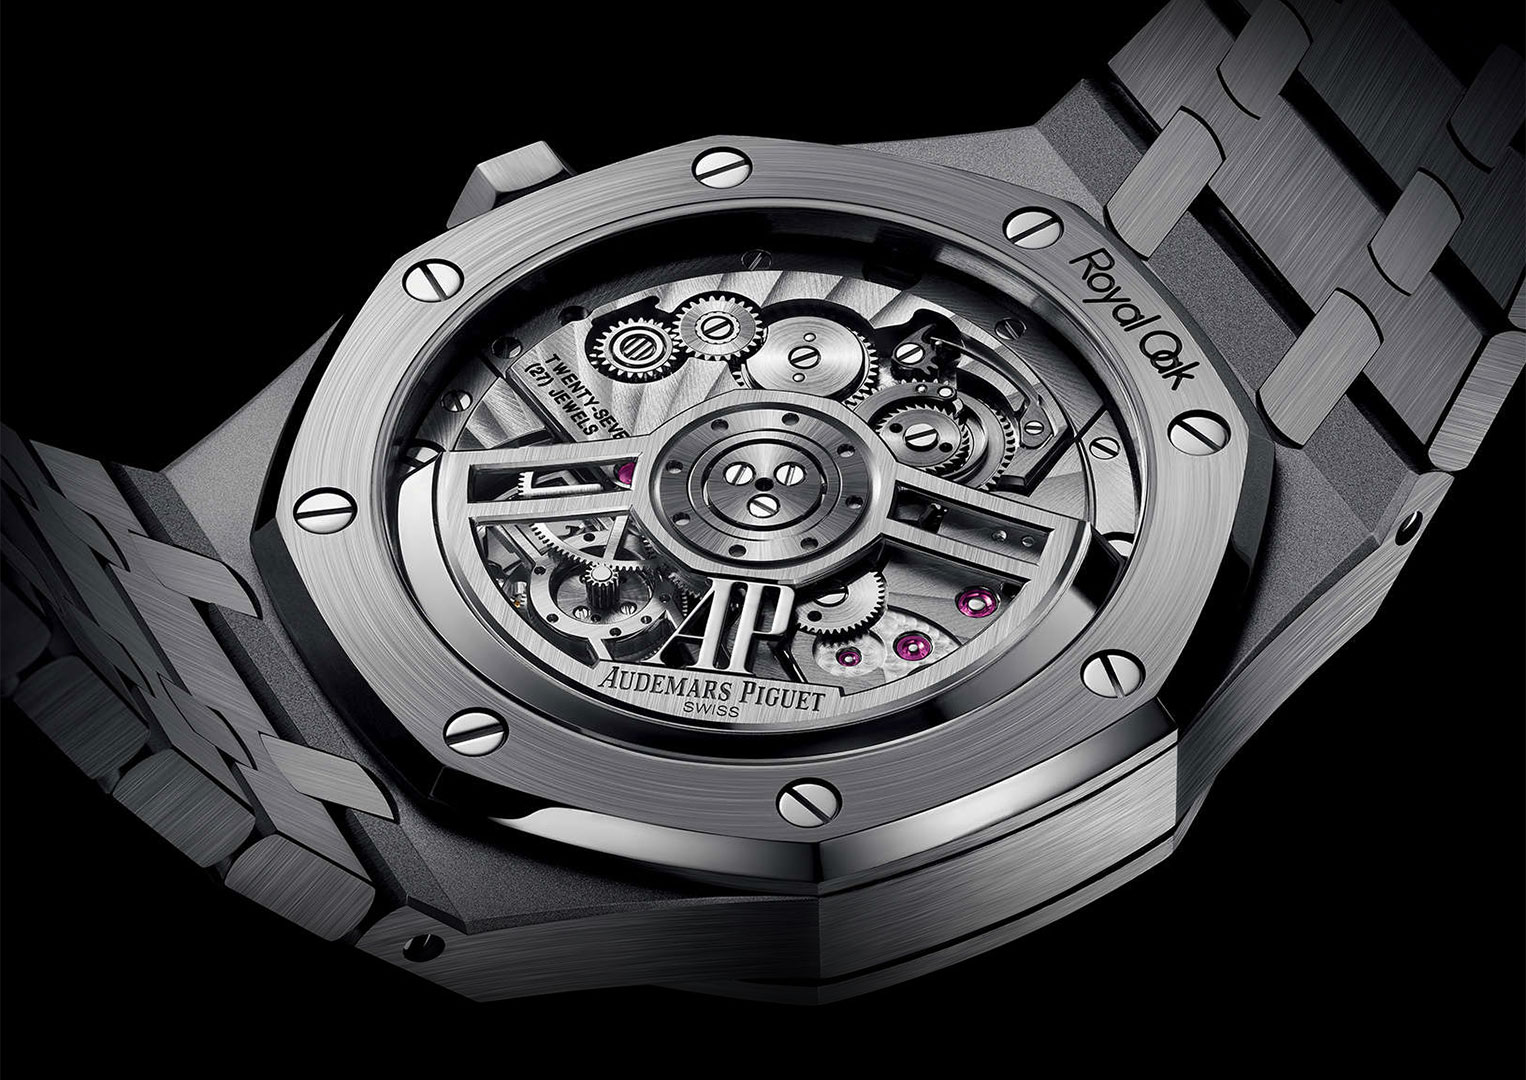 Tourbillon is French for whirlwind